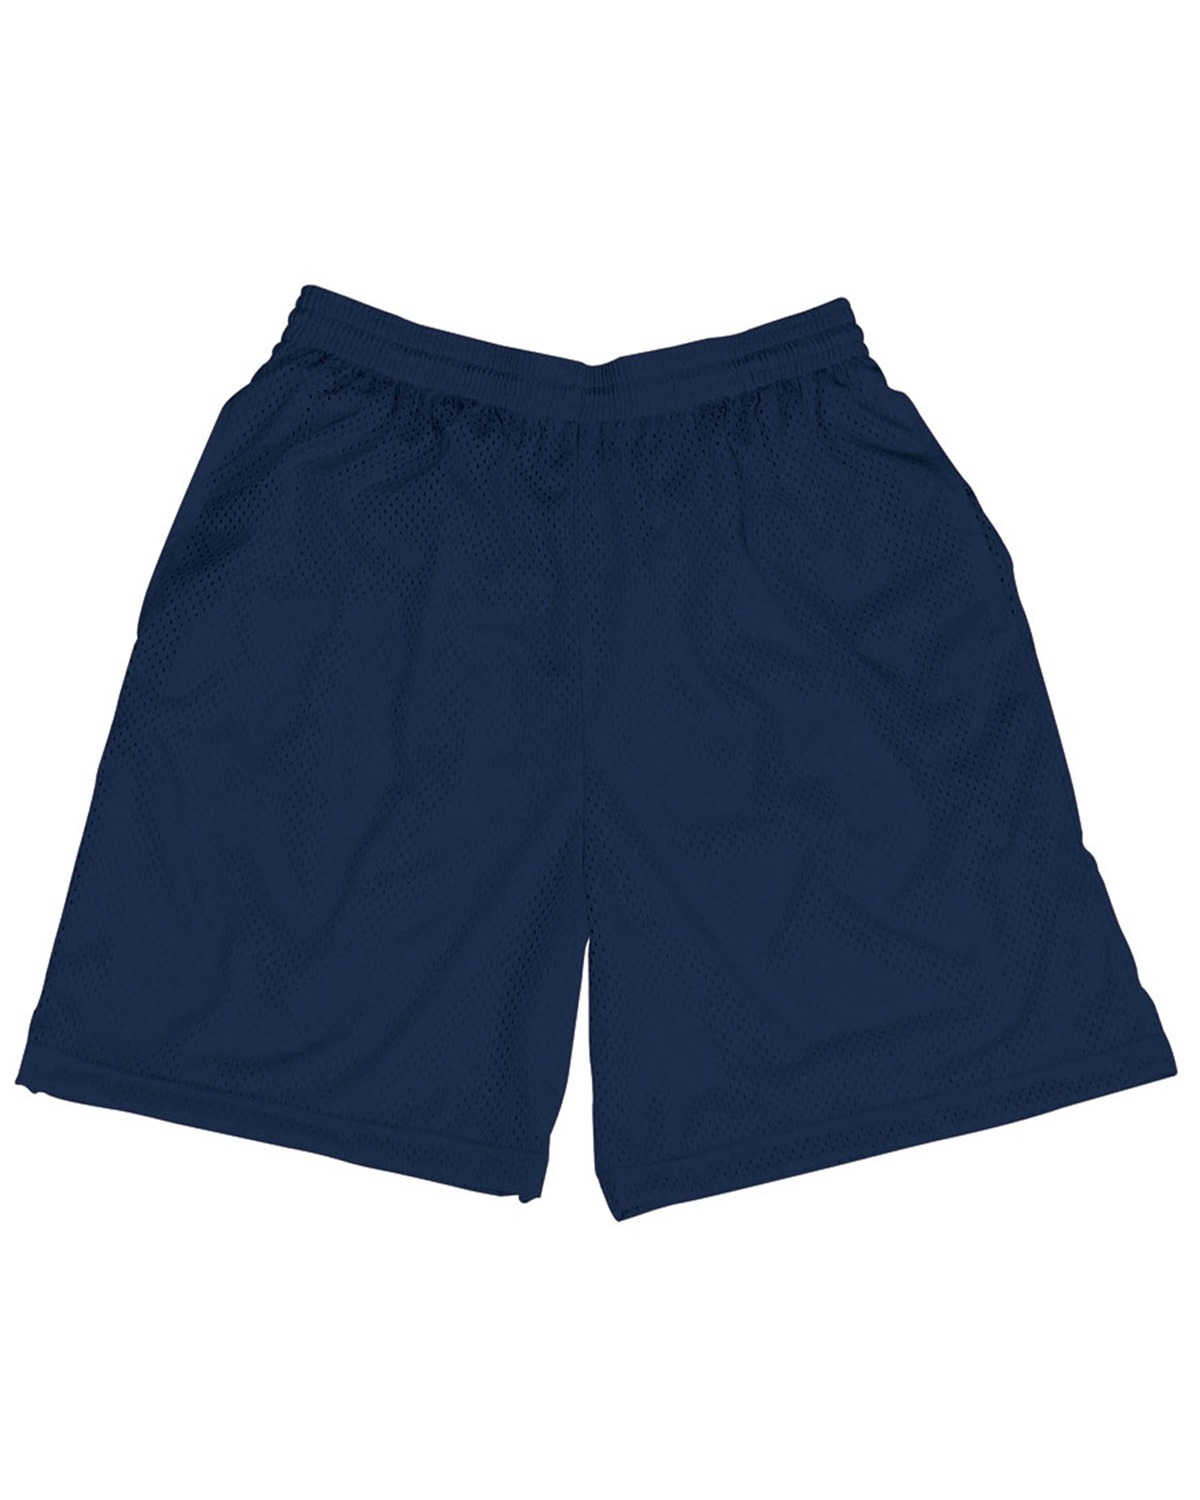 A4 Drop Ship - N5253 Adult Nine Inch Inseam Coach's Short